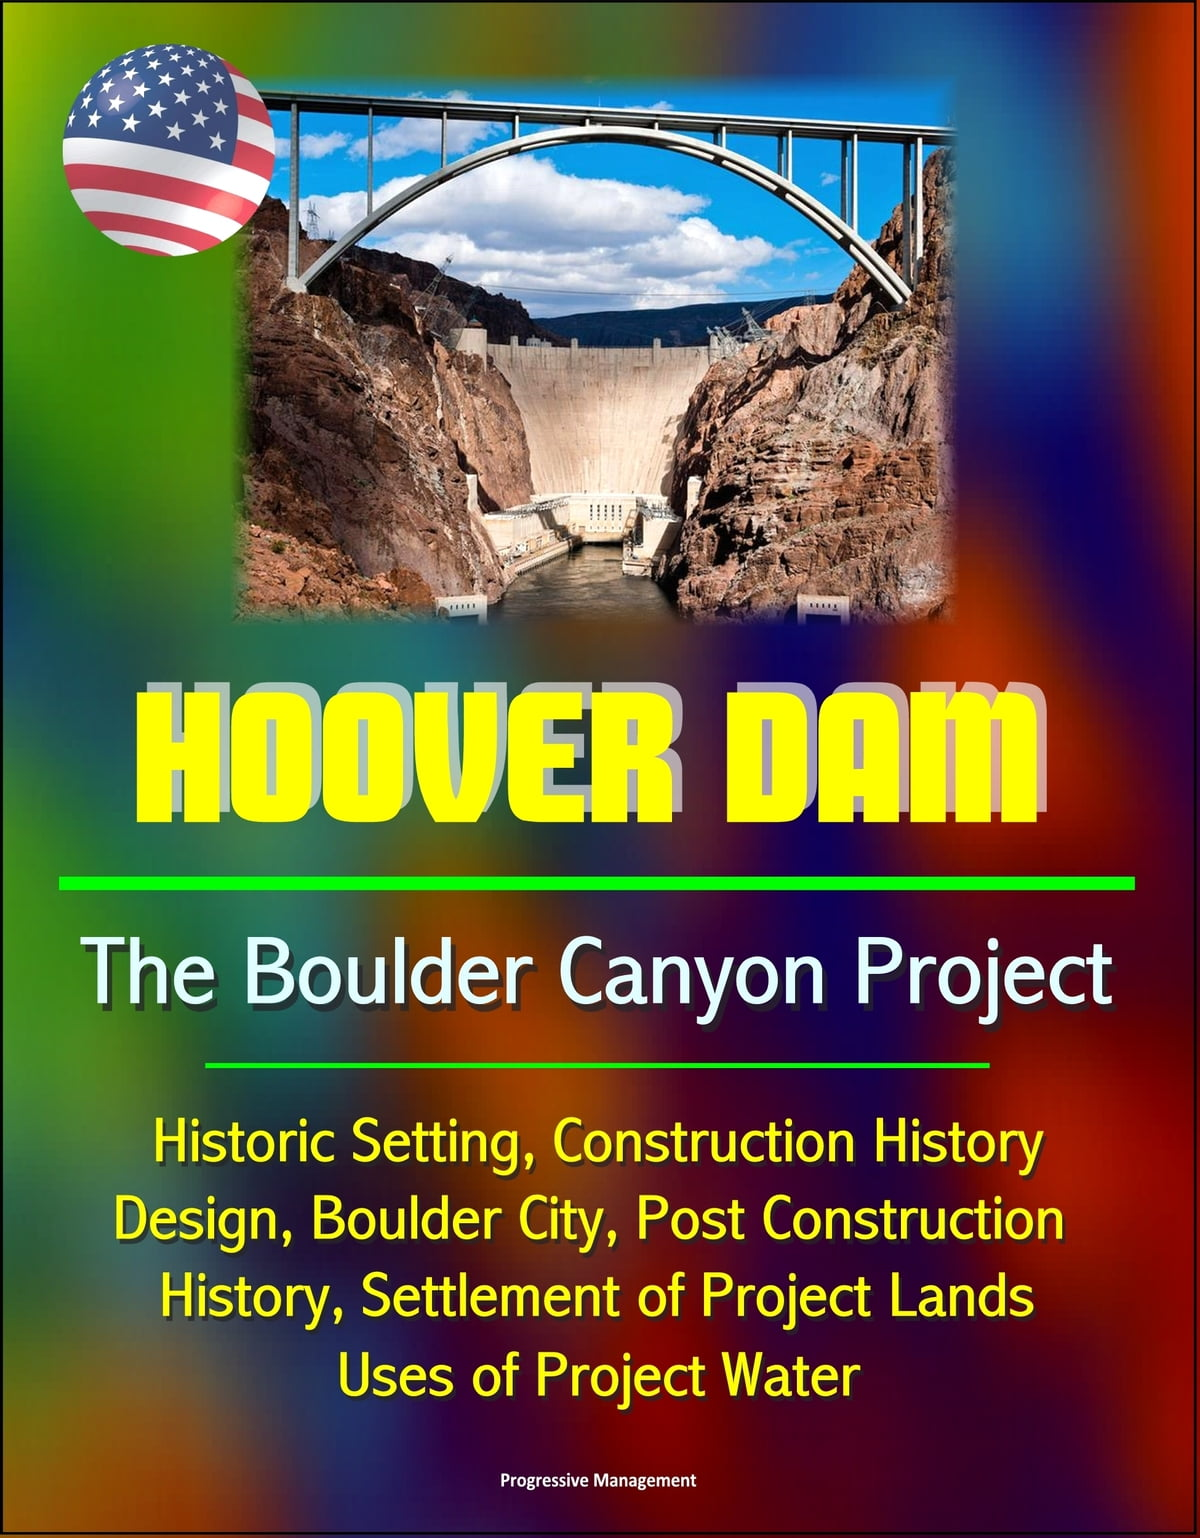 Hoover Dam: The Boulder Canyon Project - Historic Setting, Construction  History, Design, Boulder City, Post Construction History, Settlement of